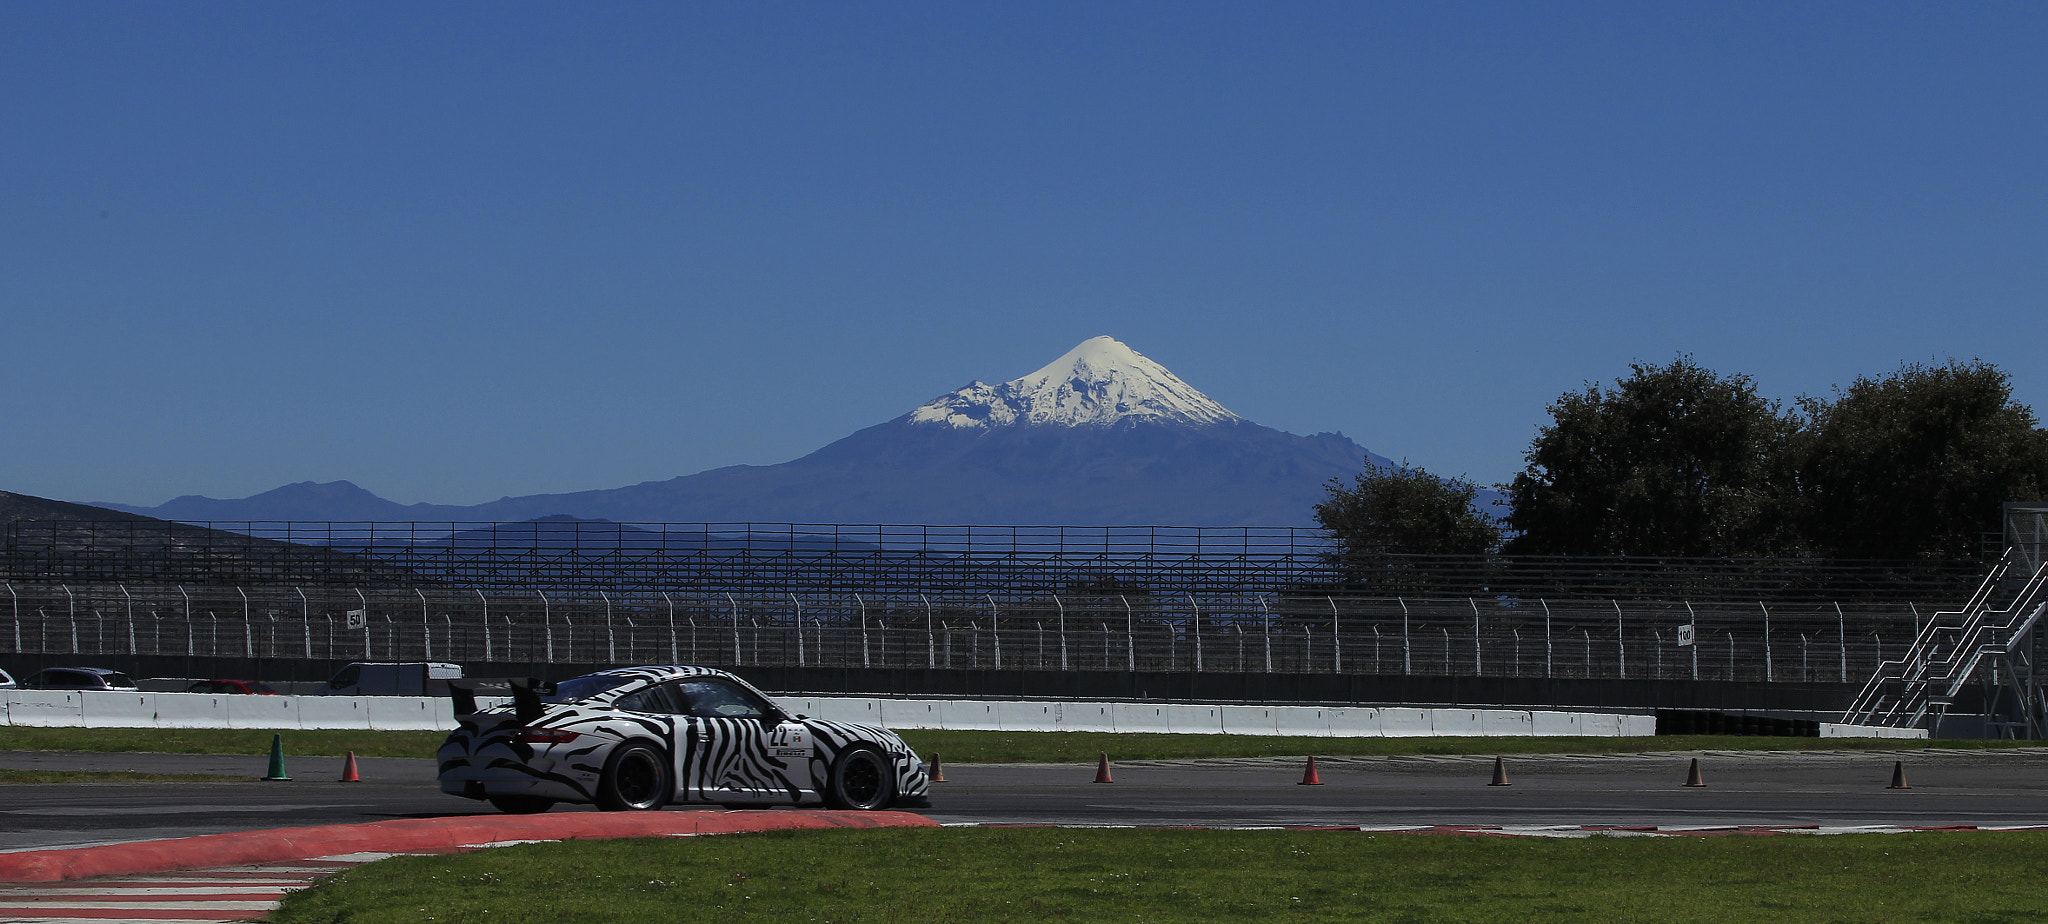 Photograph Porsche and Volcano by Cristobal Garciaferro Rubio on 500px